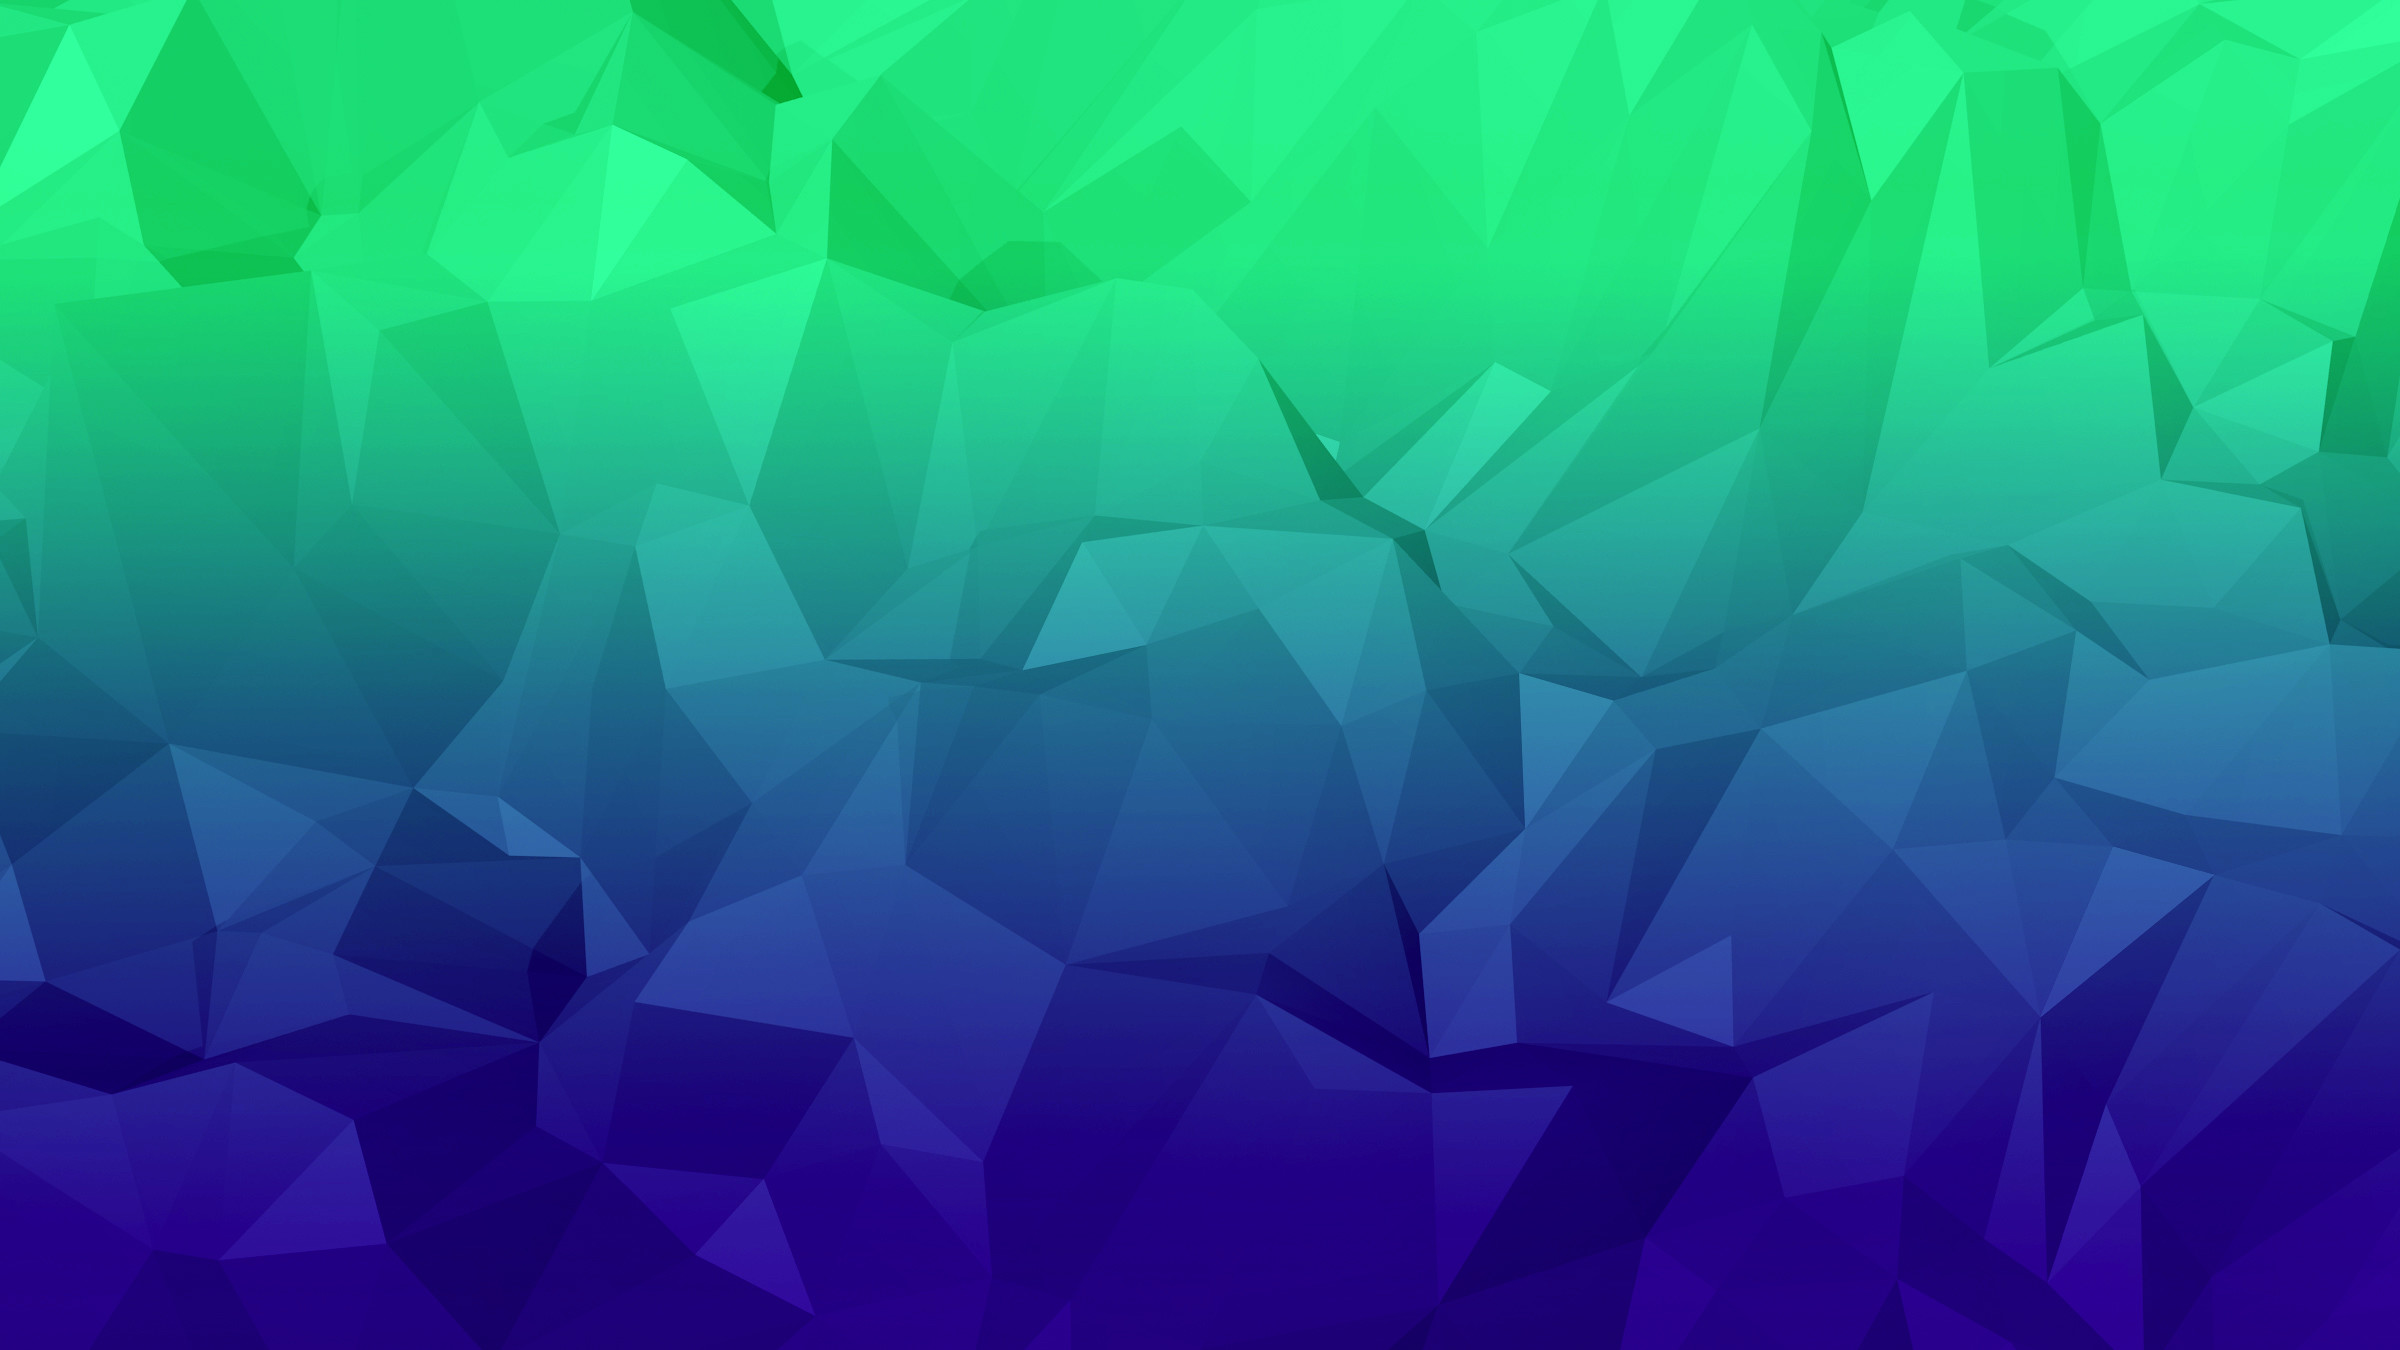 Res: 2400x1350, ... Blue-Green Low Poly Wallpaper by nordicstew